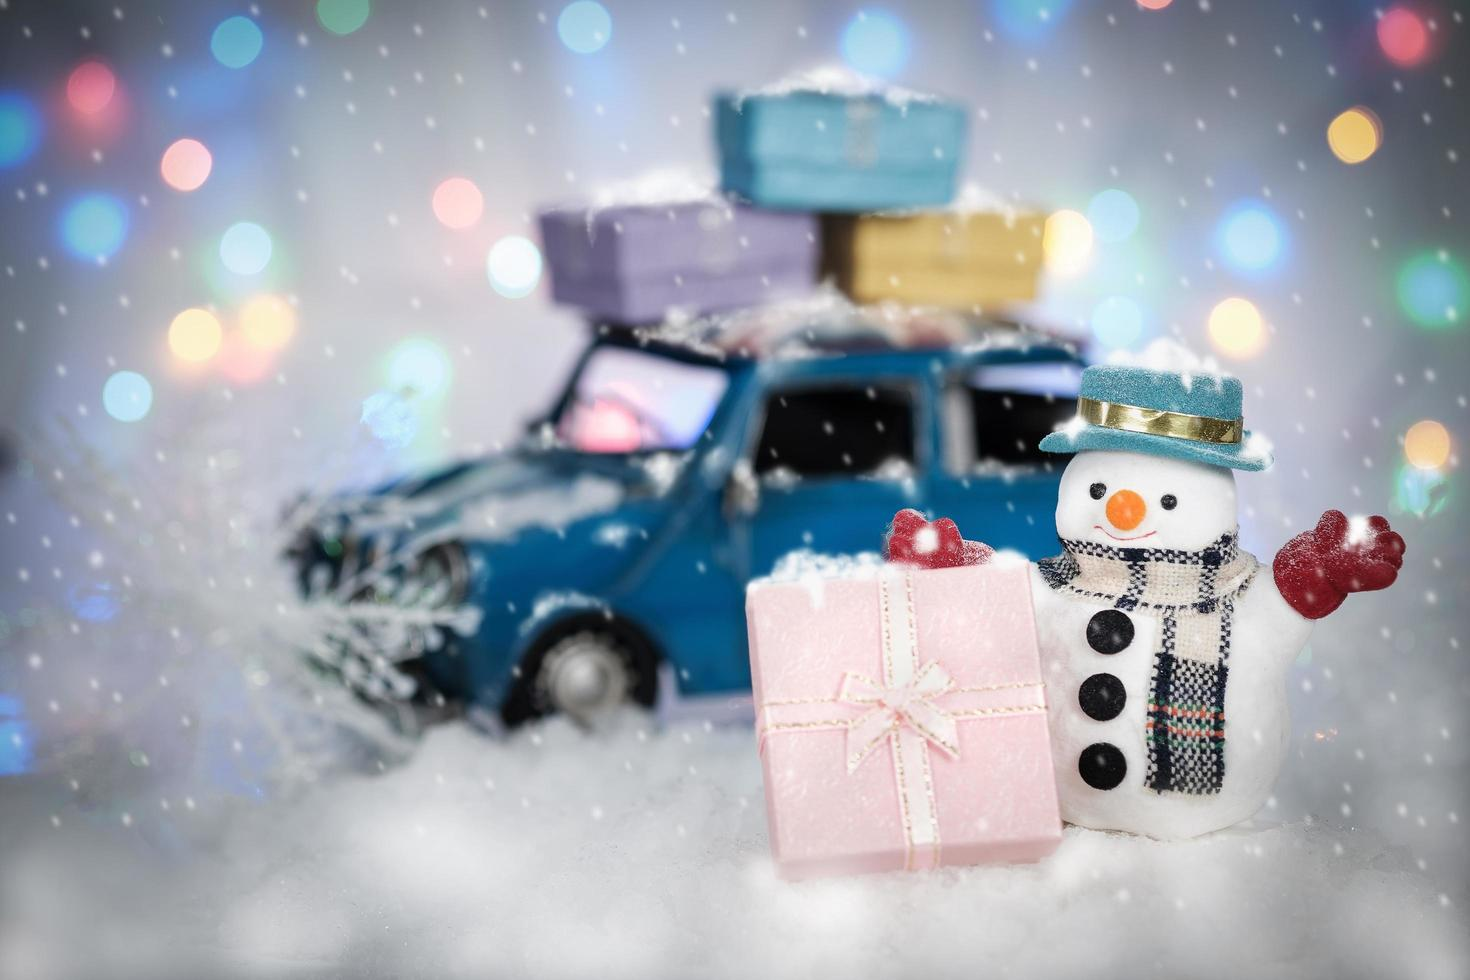 Snowman with presents and car photo